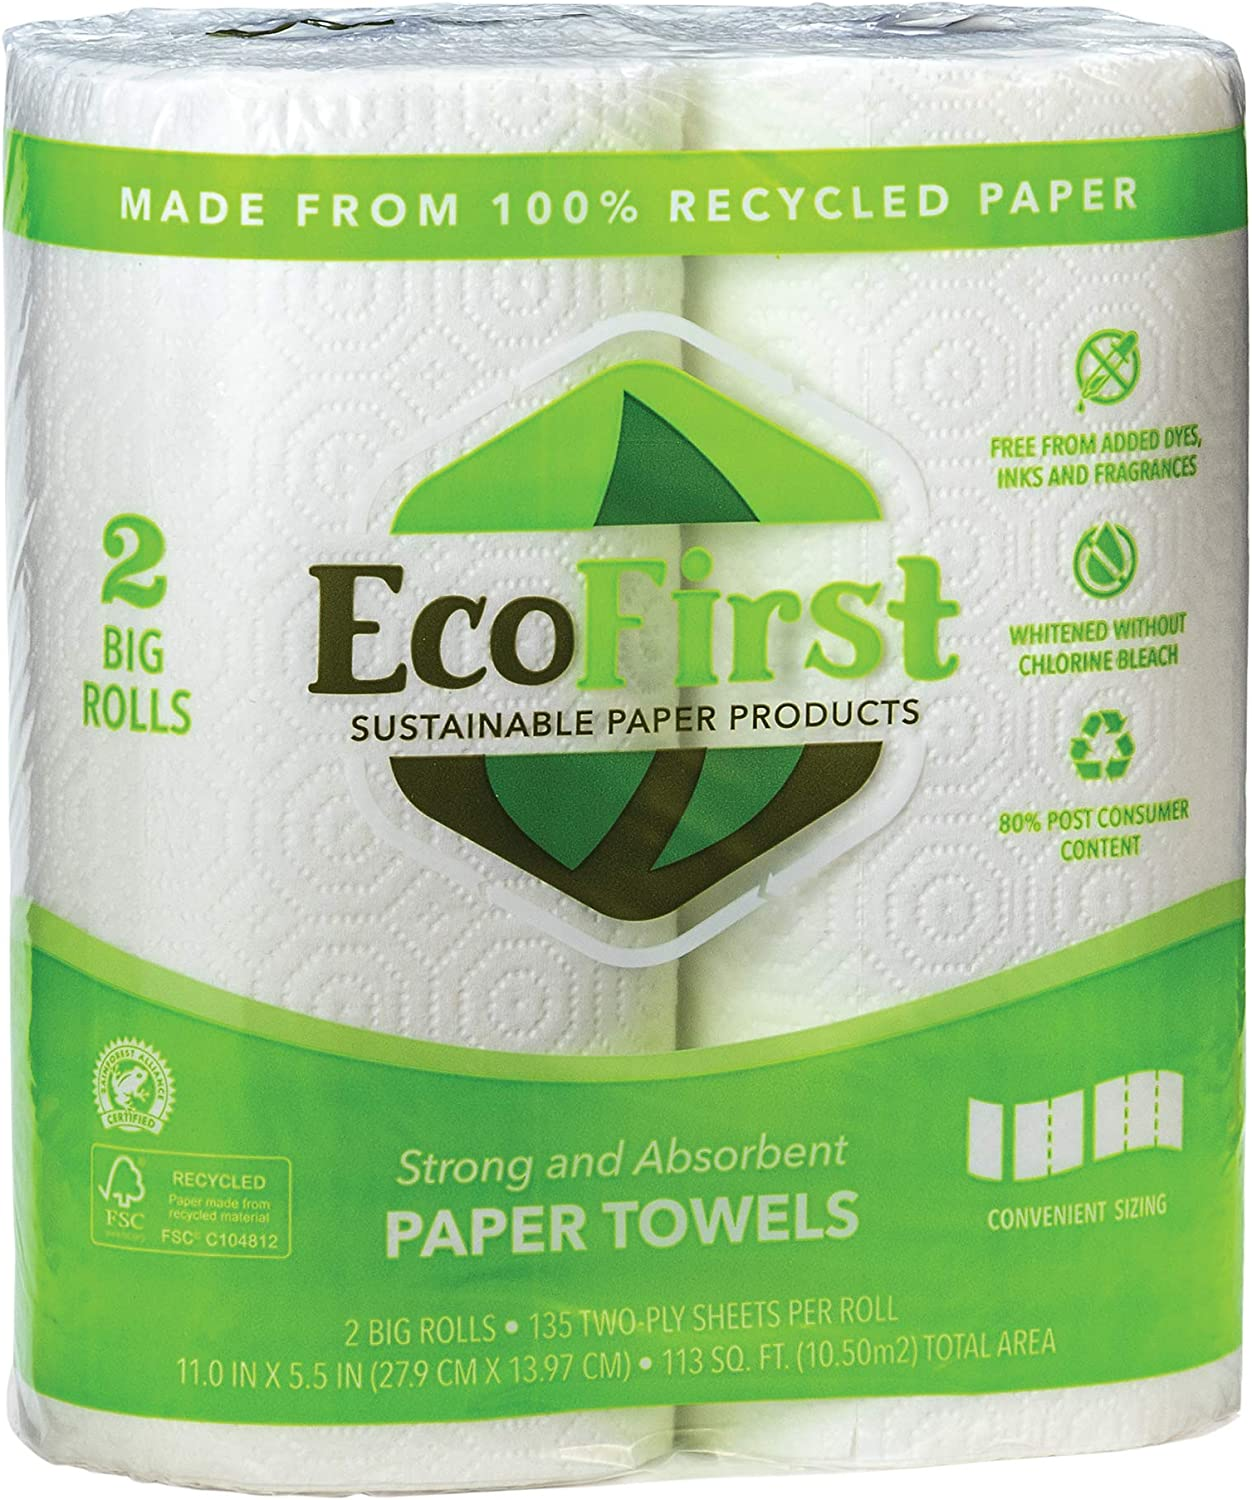 Recycled Paper Towels 2 Rolls, 113 sq.ft